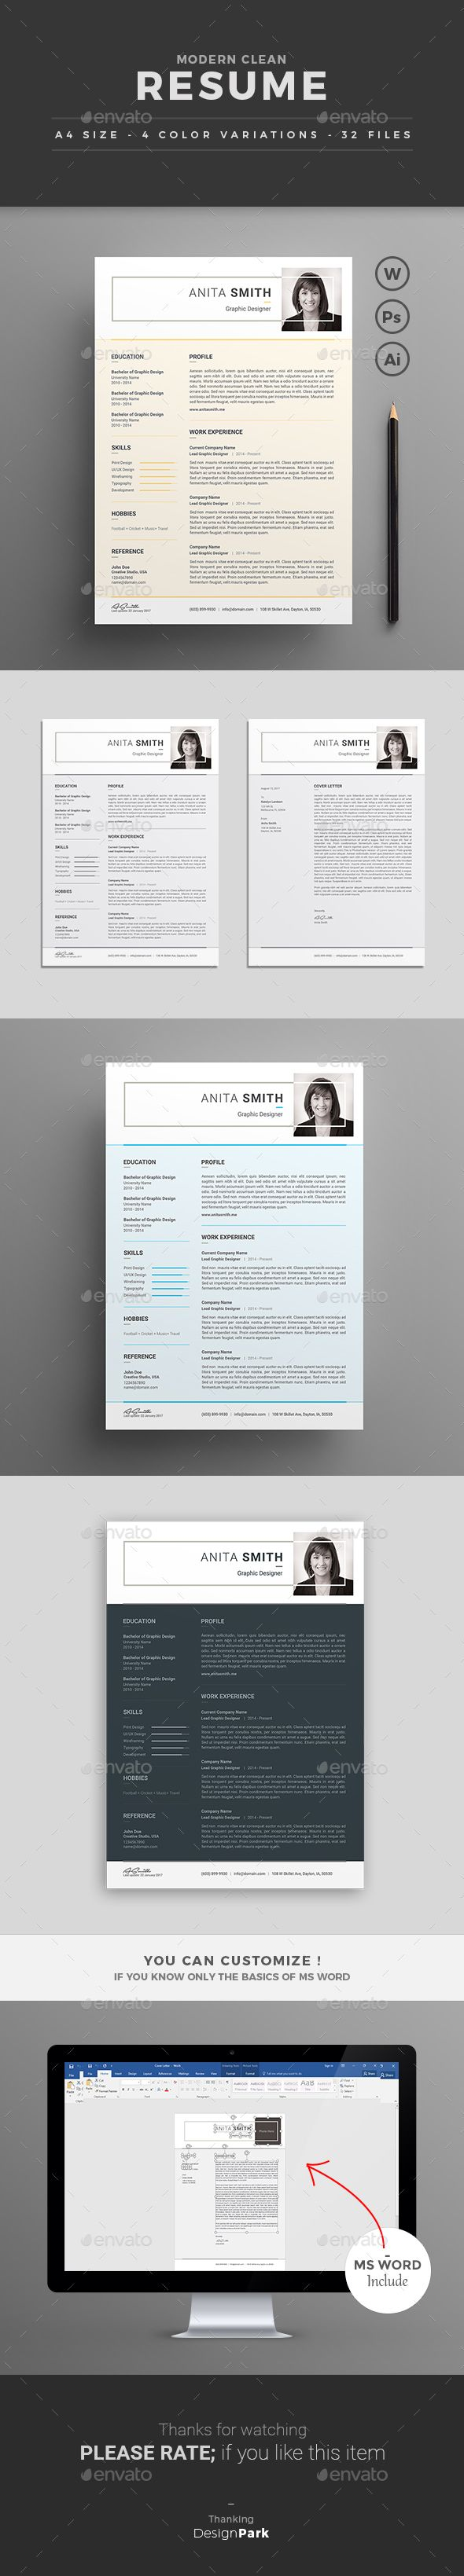 Resume by design park This Modern Clean and